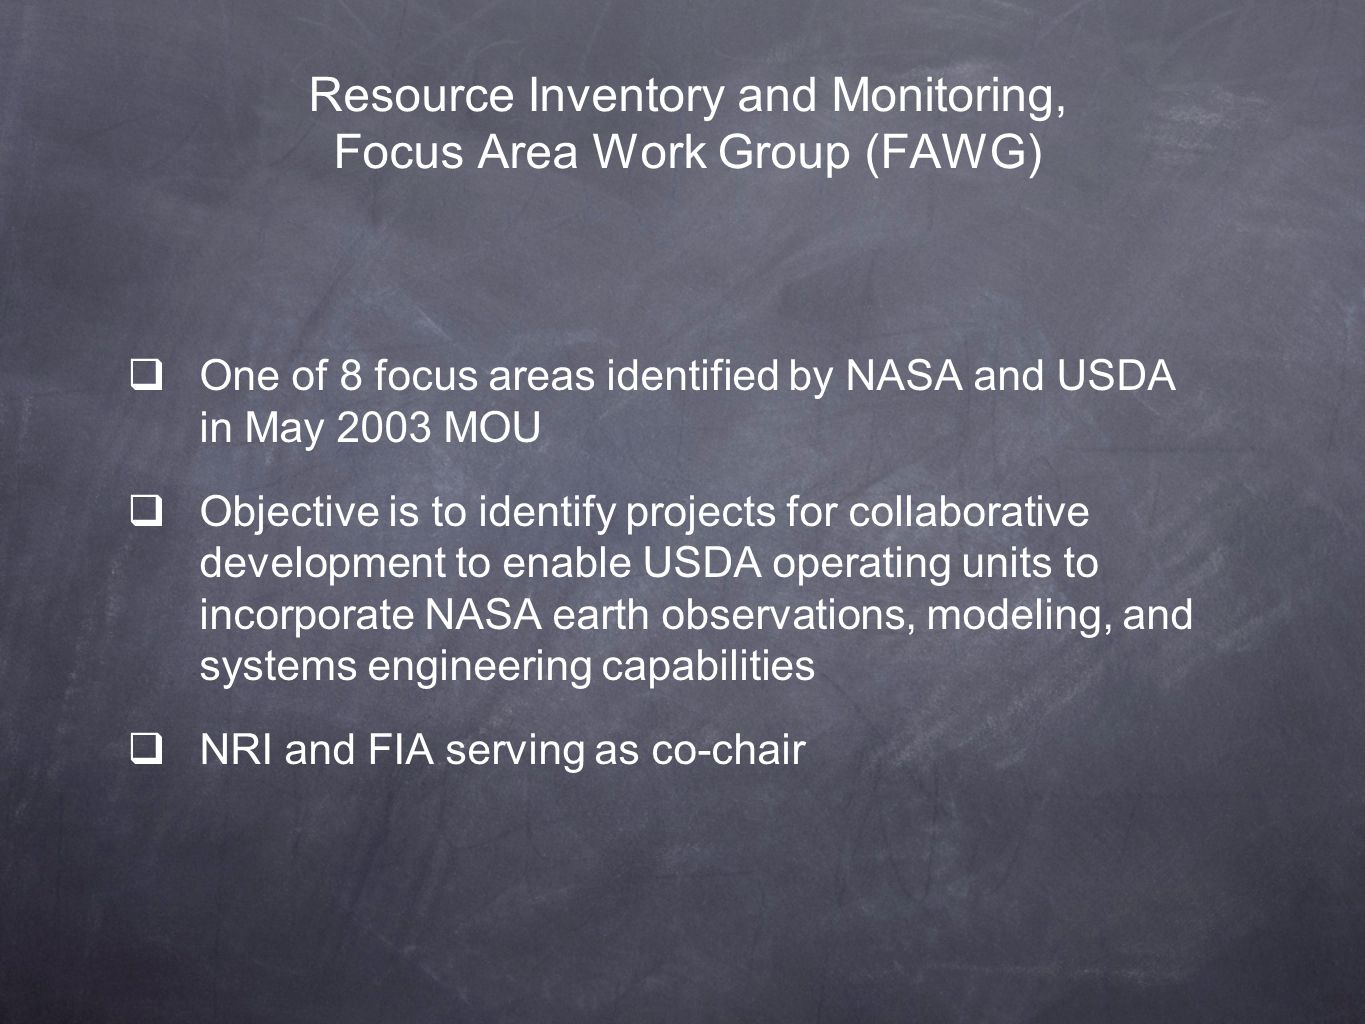 Resource Inventory and Monitoring, Focus Area Work Group (FAWG)